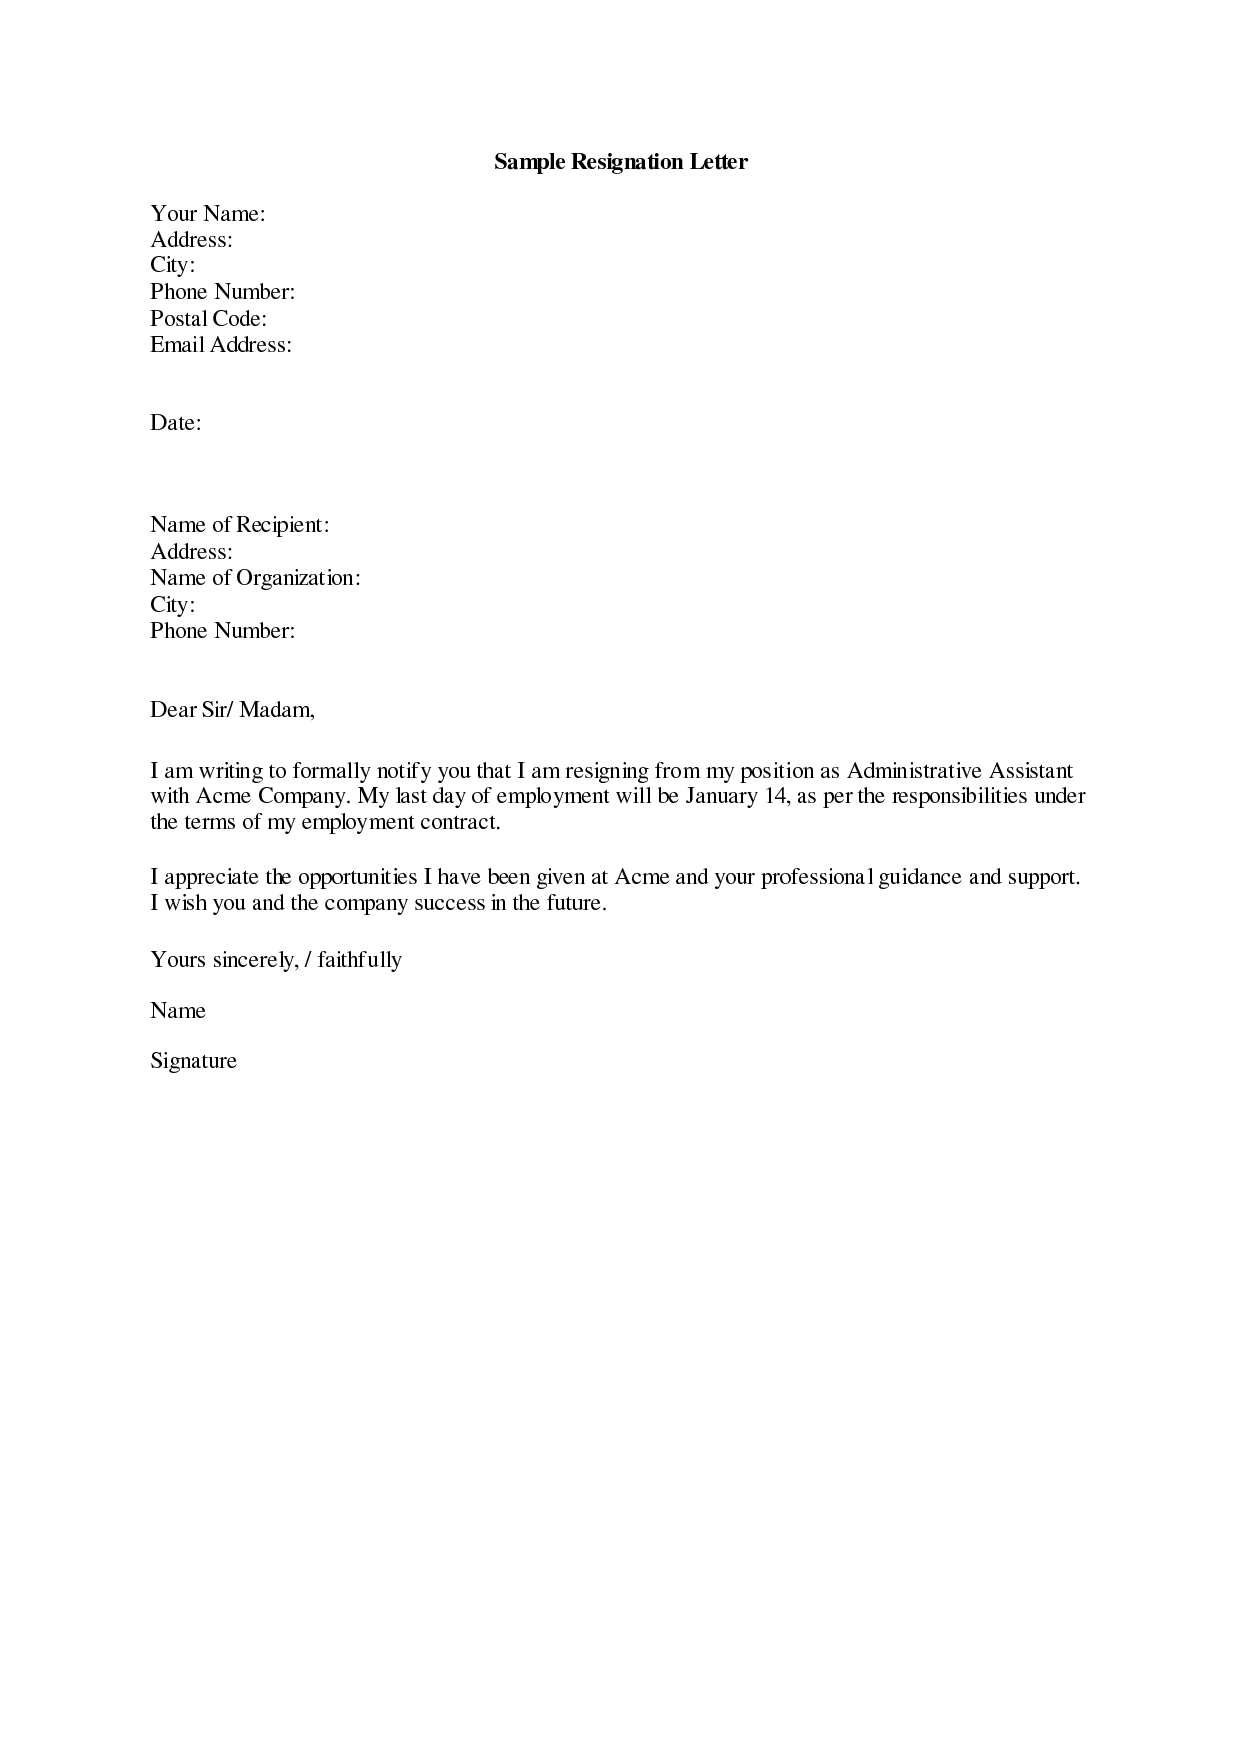 example resignation letter  resignation-letter-sample-19 ... - letter of resignation | ankit ...